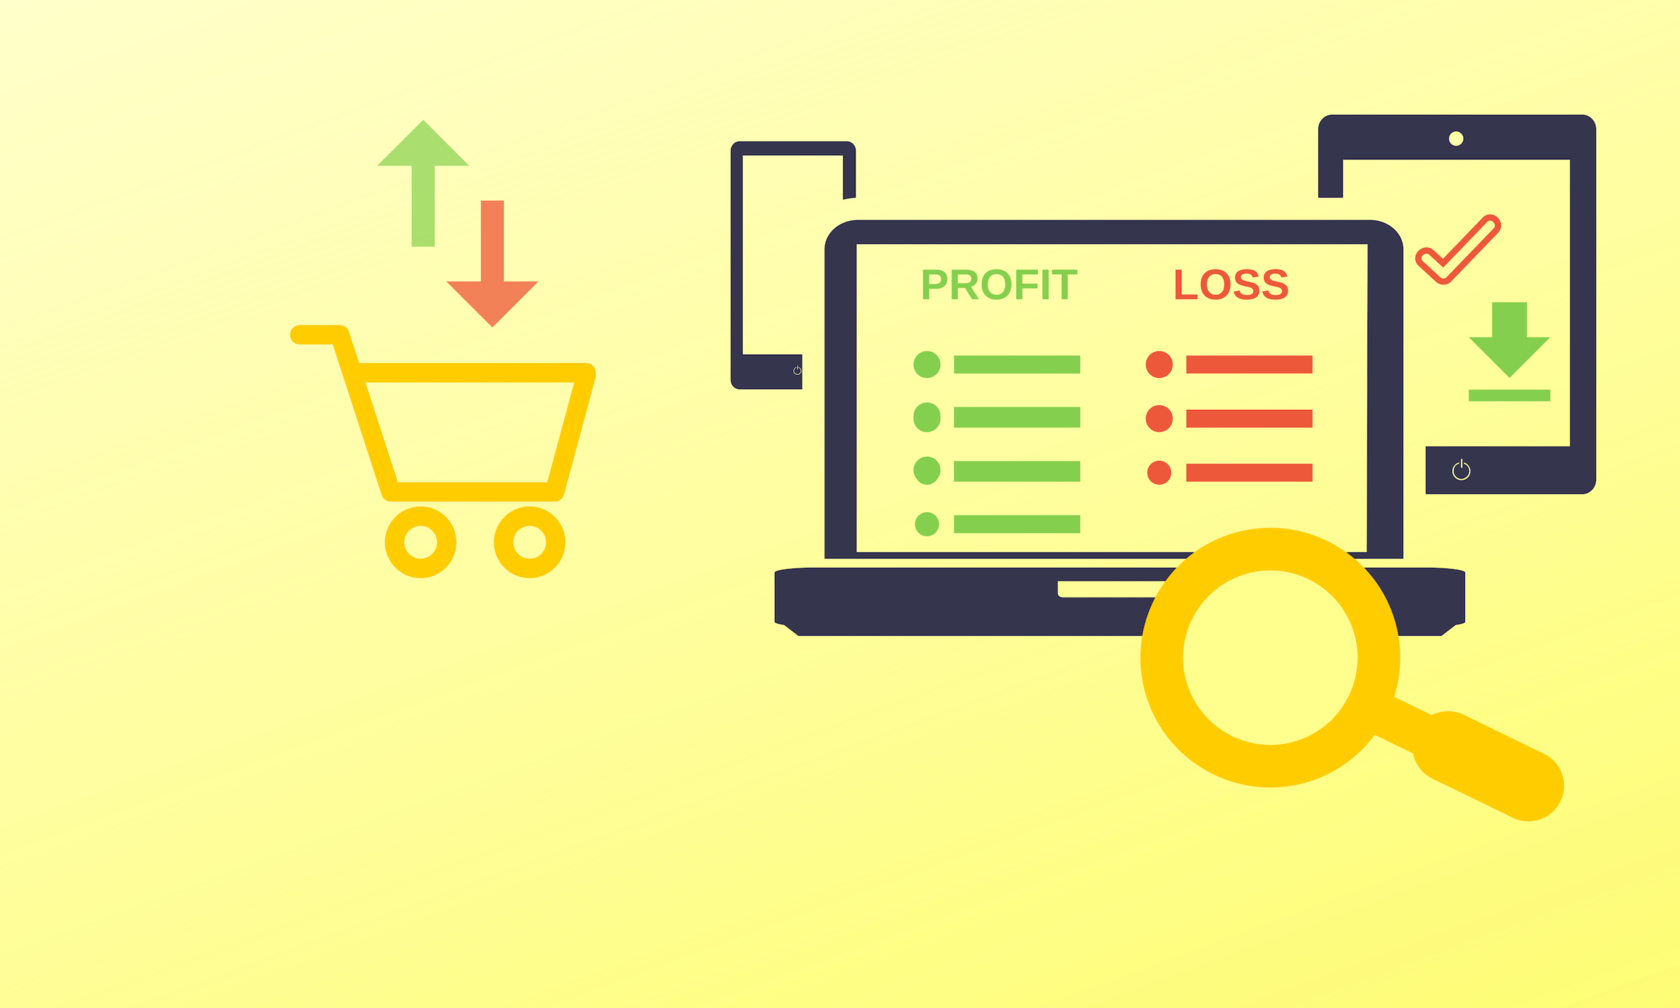 Profit And Loss Statement For Startups Free And Premium Tools By Freshcodeit The Startup Medium